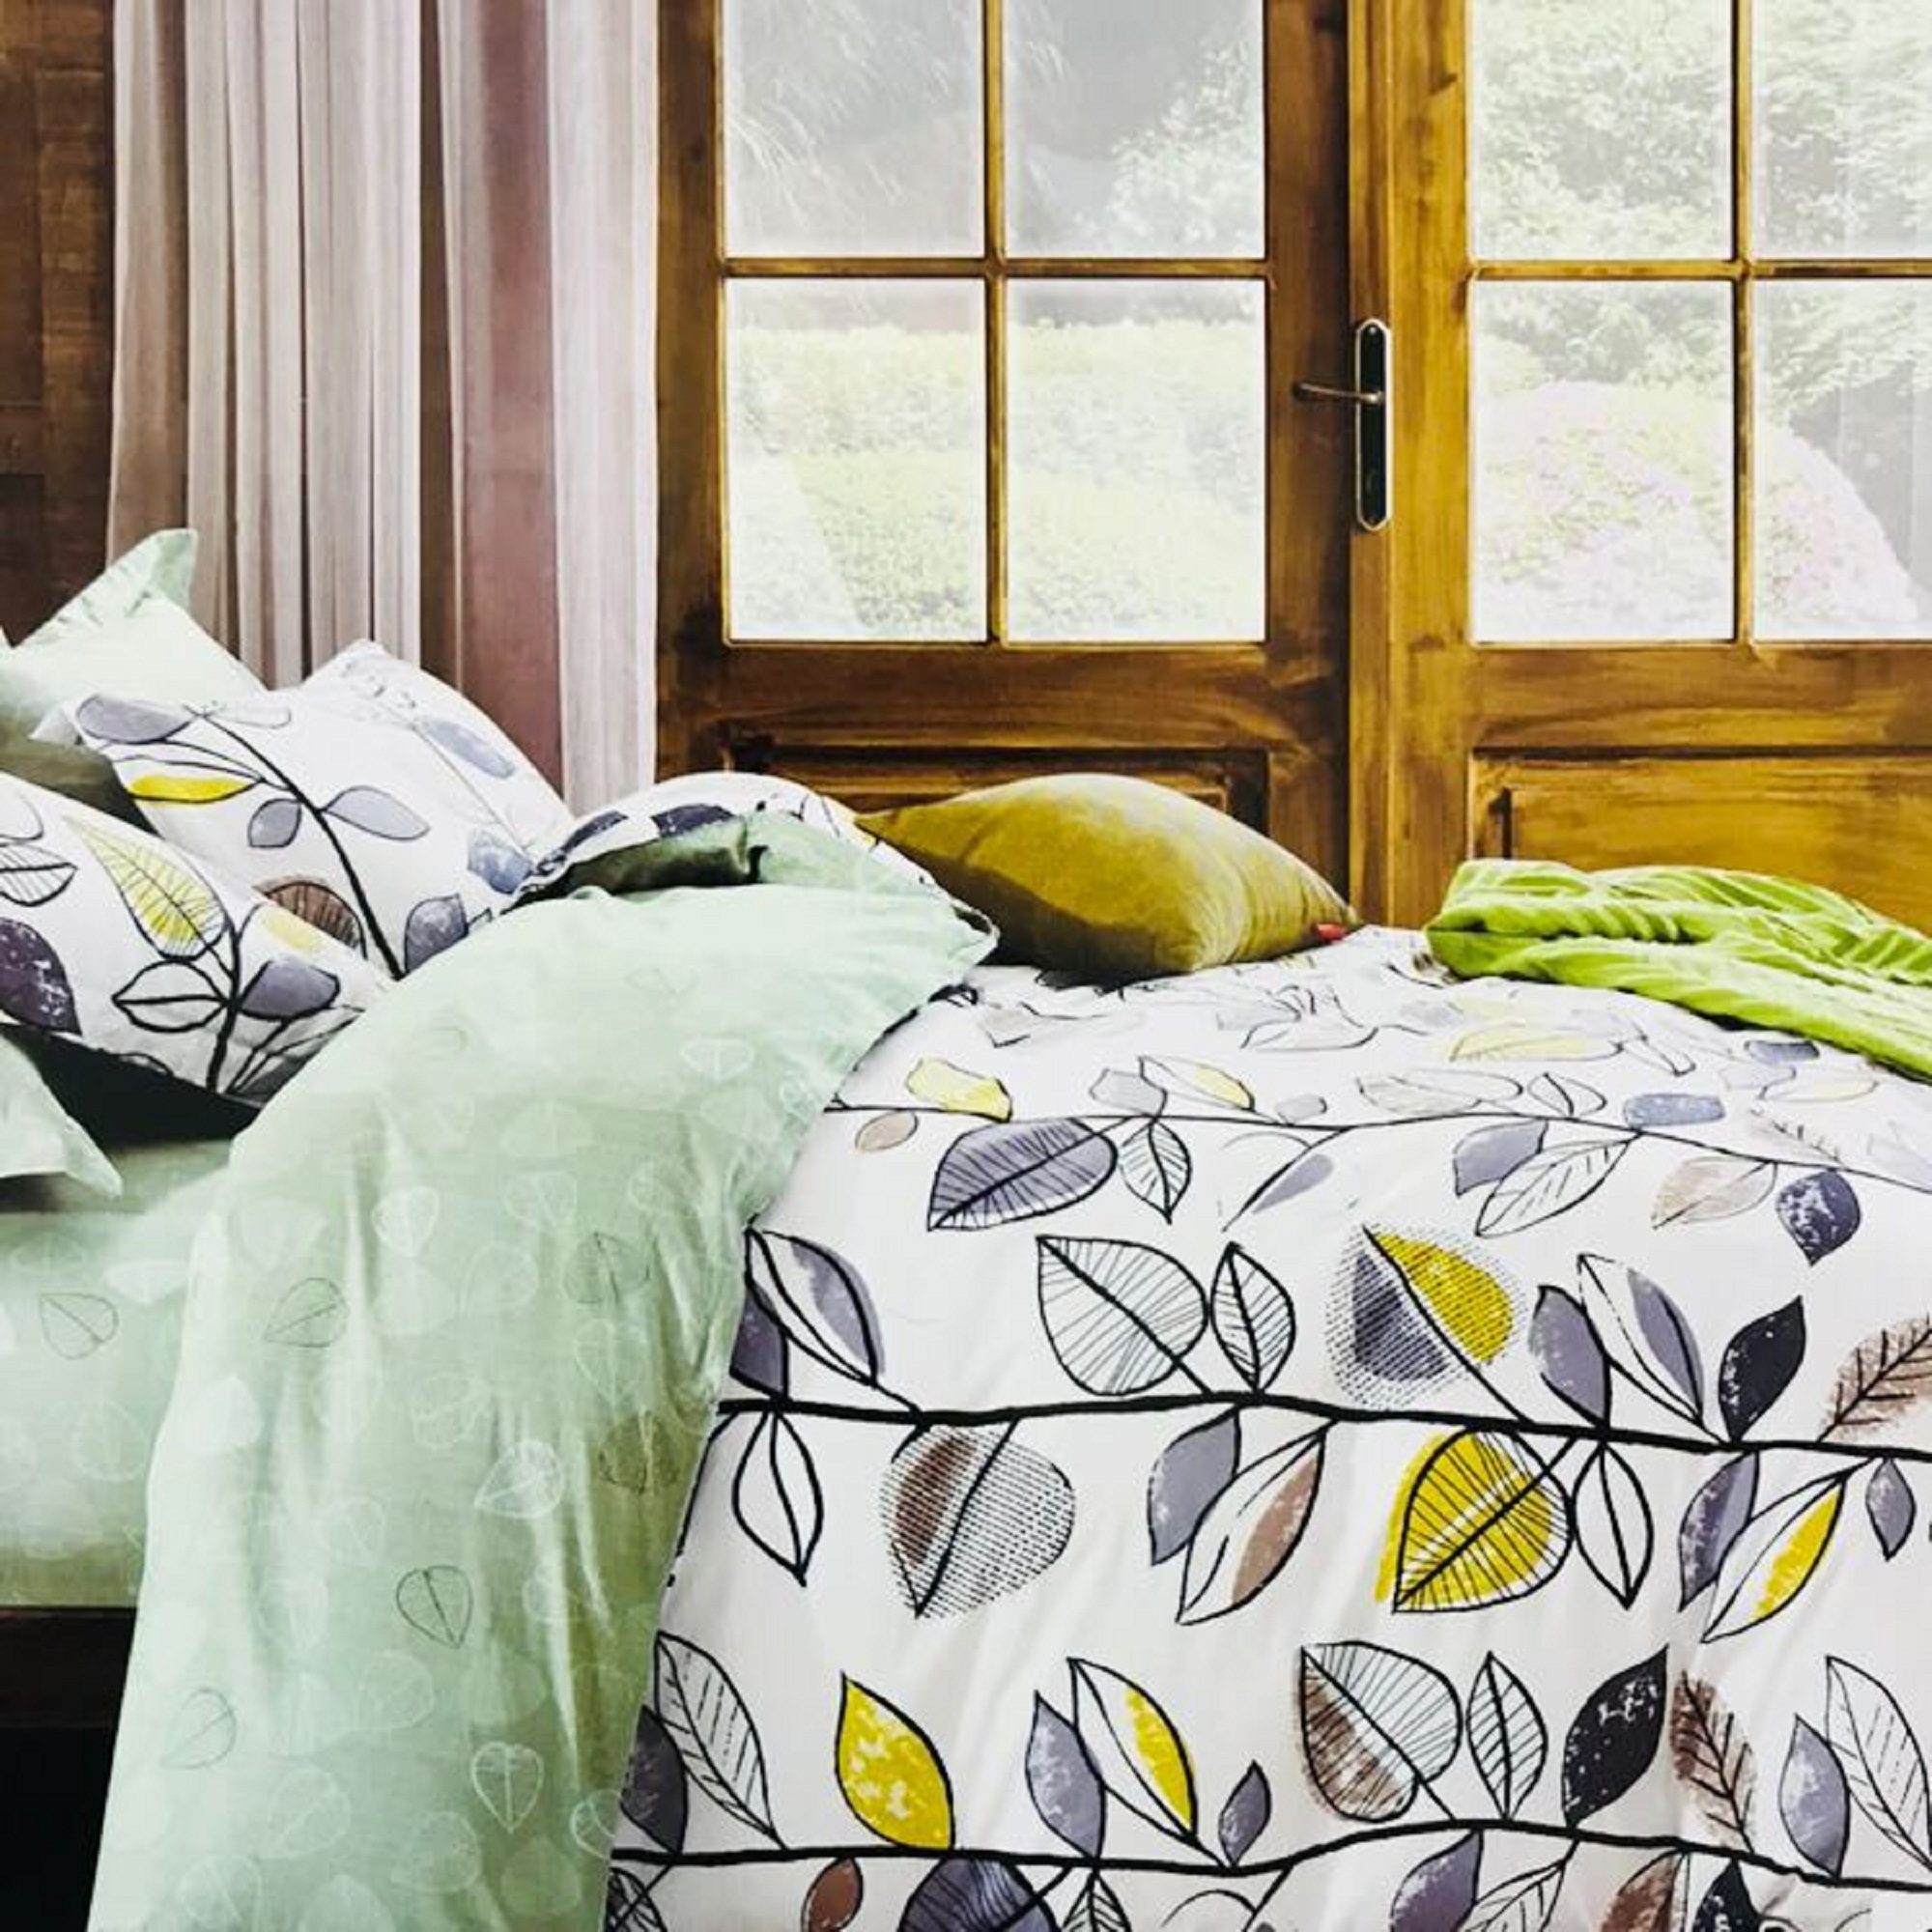 AKR CREATION COTTON Bedsheet king size 108 Inch X 108 Inch  (1 Double Bedsheet, 2 Pillow Covers)